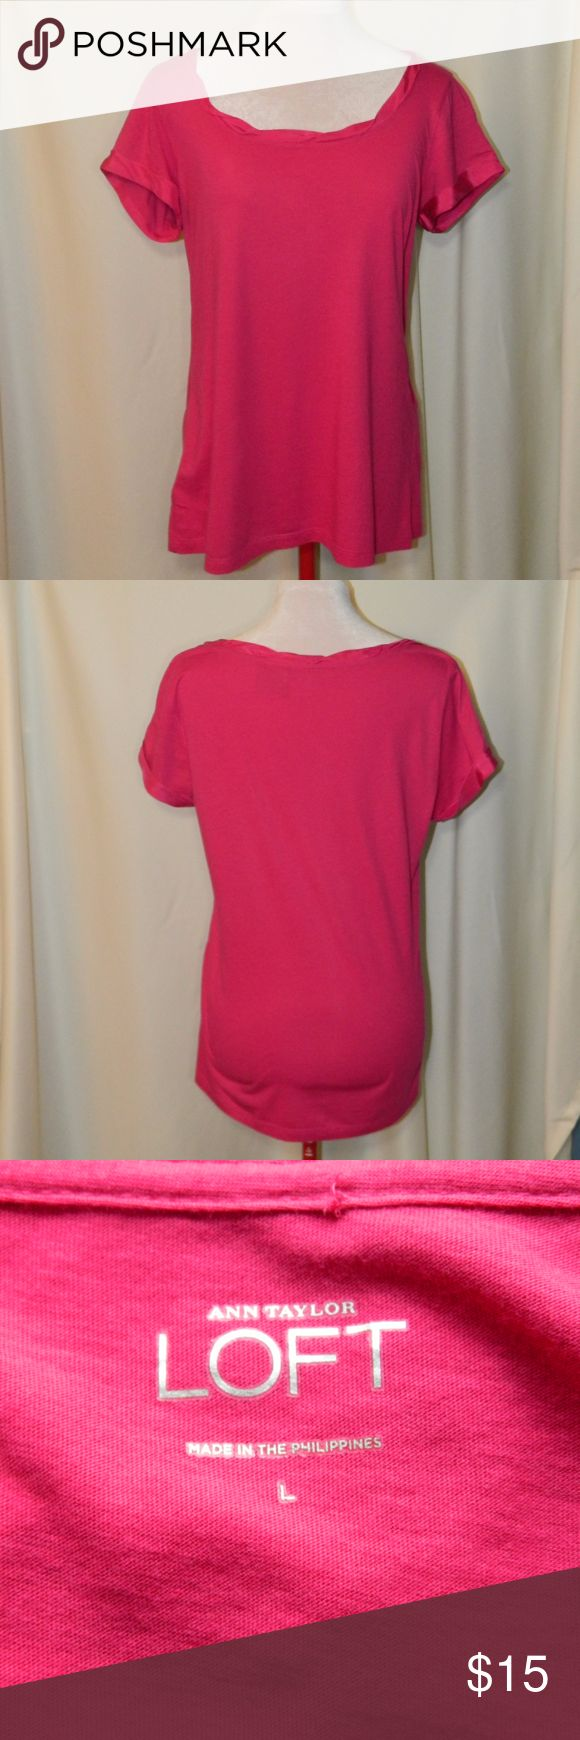 LOFT Bright pink short sleeved top Very pretty short sleeved top with silk trim around the neckline and sleeves! Super soft! 60% cotton, 40% modal. In very good condition. Size L Approximate Measurements: Total length neckline to hem = 25 in;  Armpit to armpit = 20 in. LOFT Tops Tees - Short Sleeve